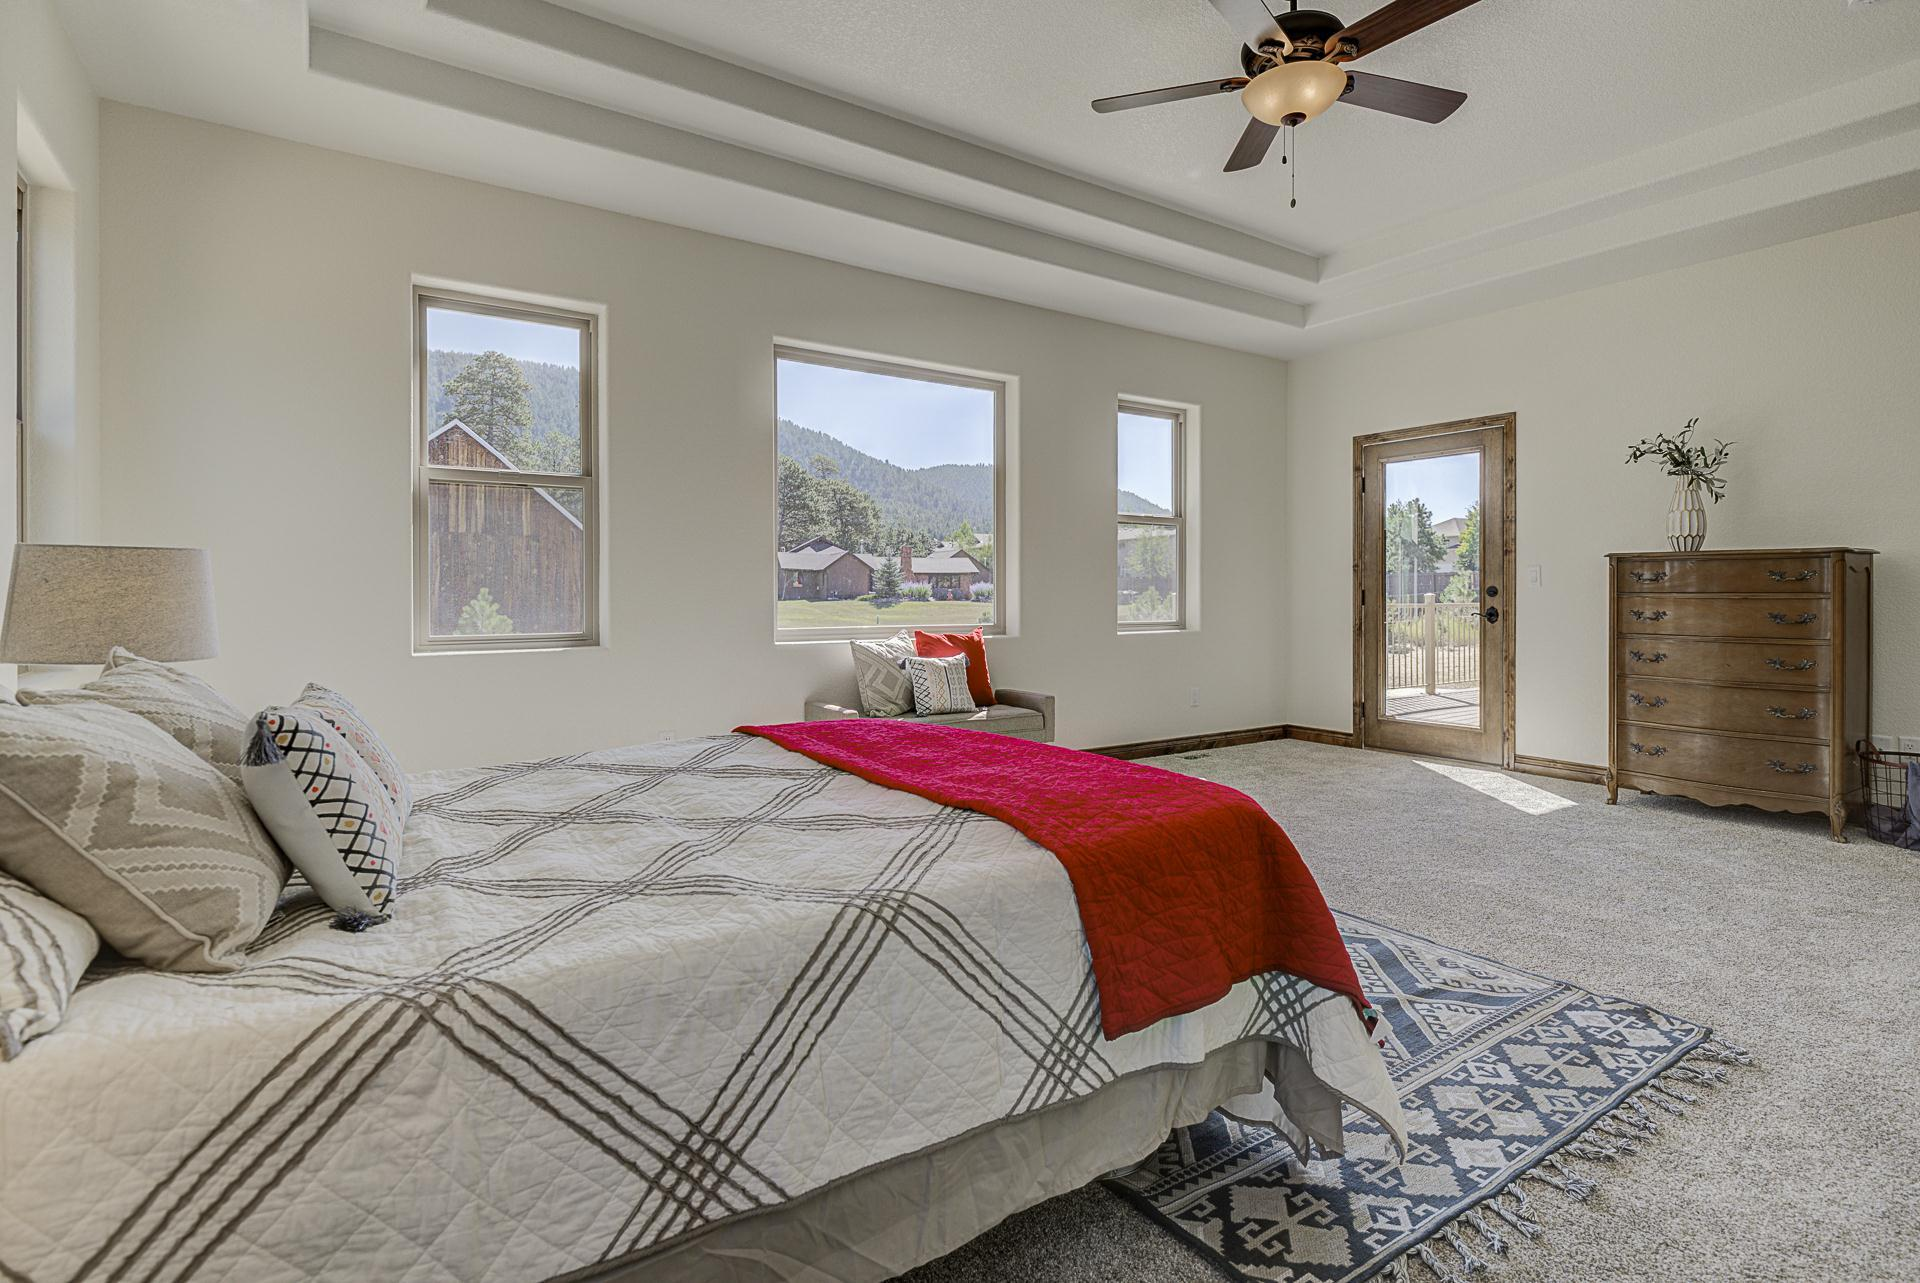 Bedroom featured in the Evergreen By Wildernest in Colorado Springs, CO